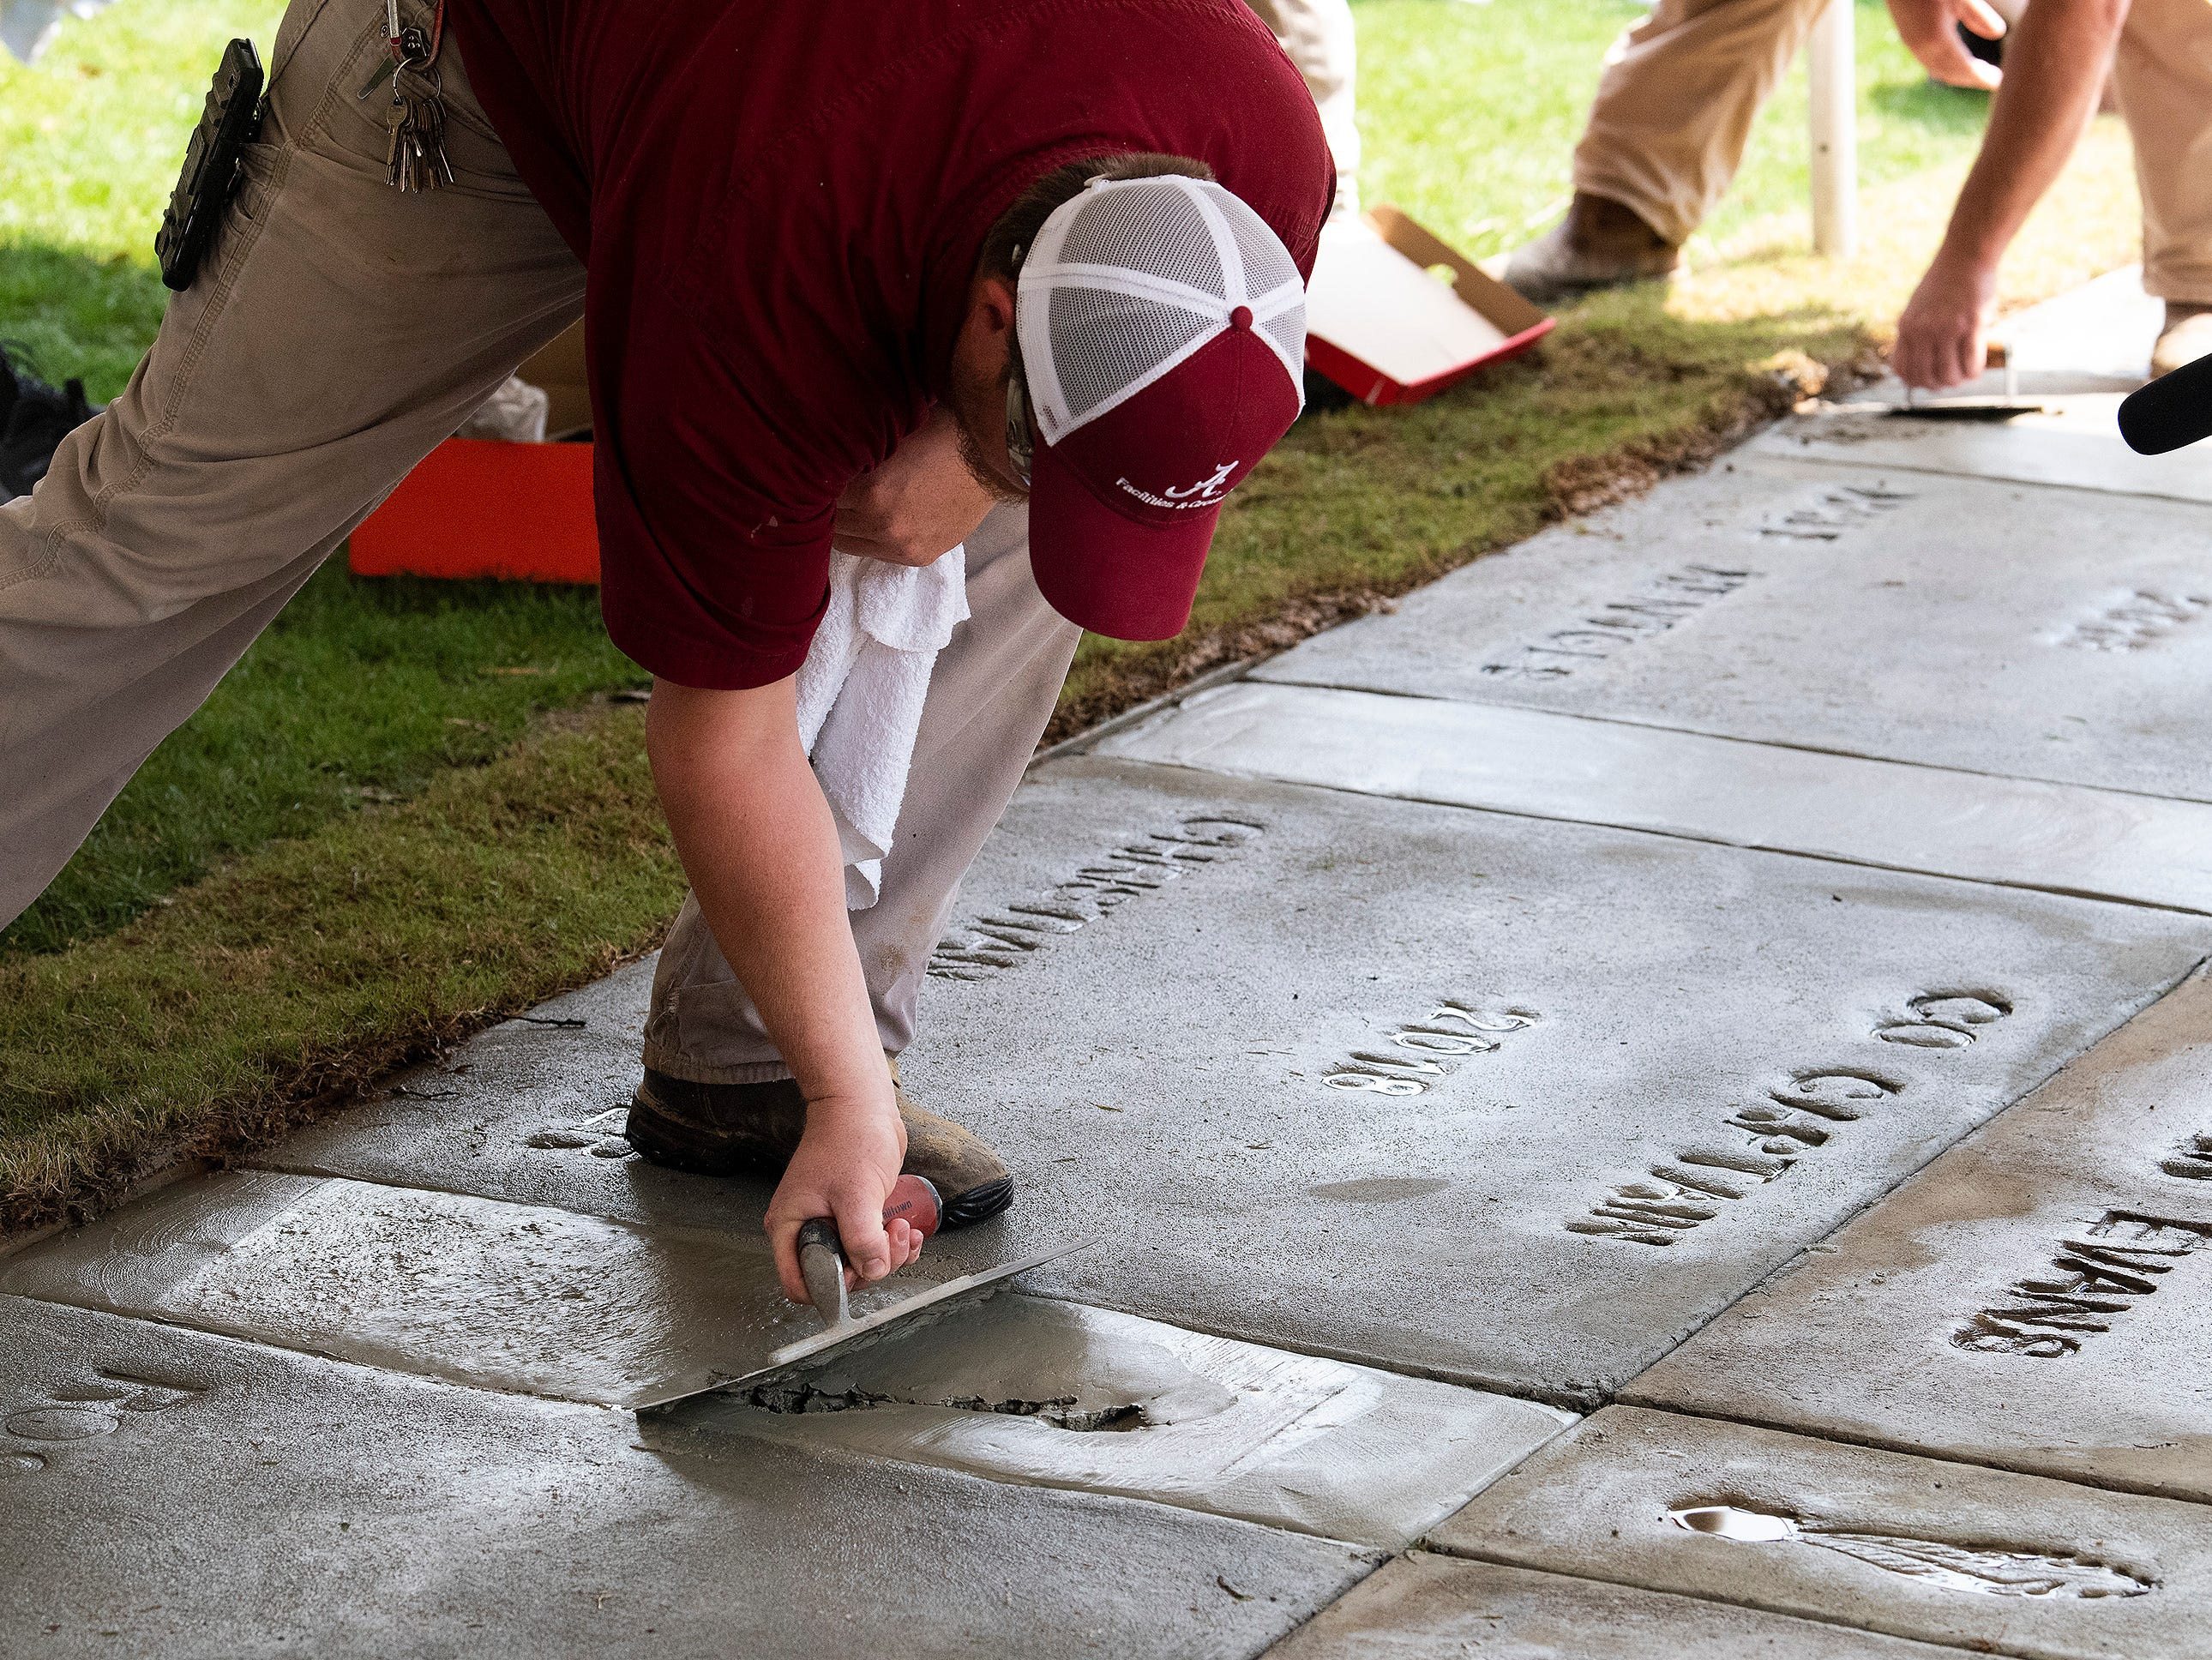 A worker repairs the accidental footprint made by Christian Miller during the Alabama football team captain ceremony at Denny Chimes on the Alabama campus in Tuscaloosa, Ala., on Saturday April 13, 2019.